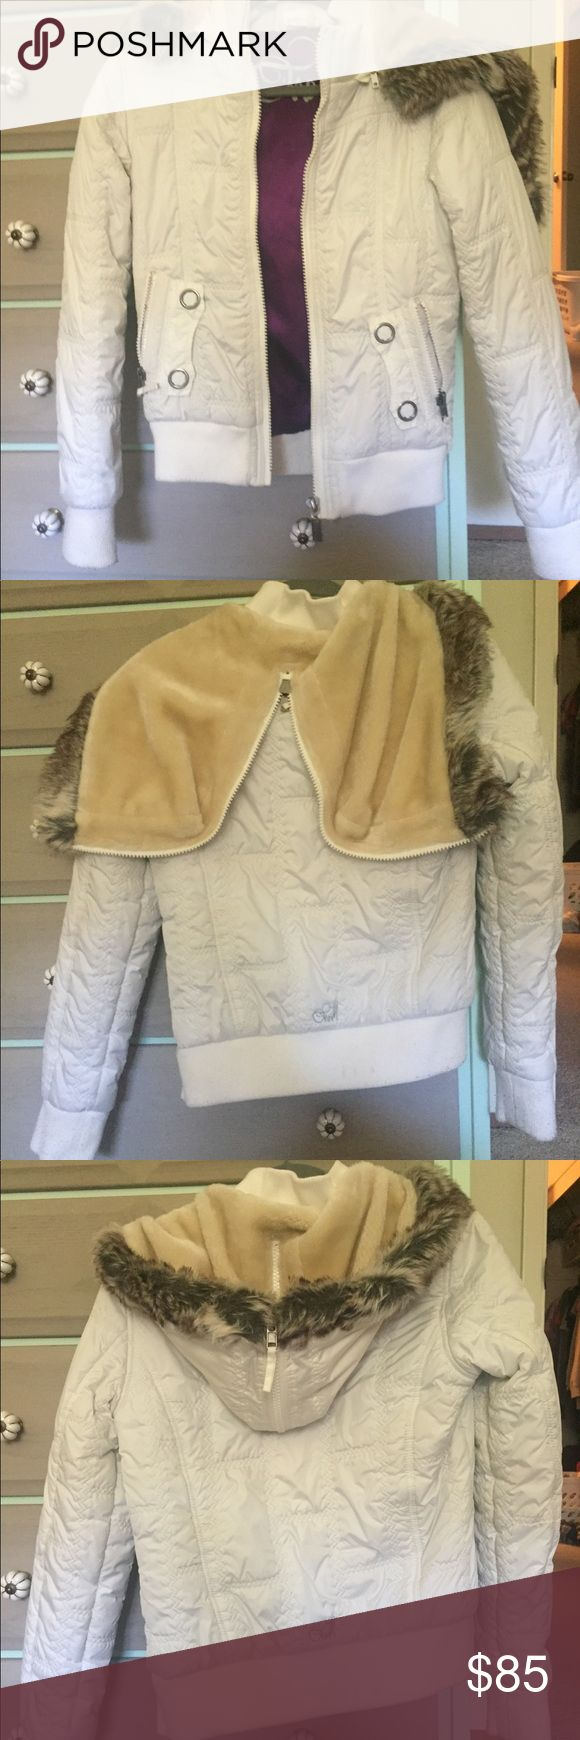 White O'Neill Snow/Winter Jacket White O'Neill Snow/Winter Jacket  •4 Front pockets, 2 on Each Side  •Detachable Hood with Zipper  •Fur Lined Hood  •Great Condition  •Worn a Few Times O'Neill Jackets & Coats